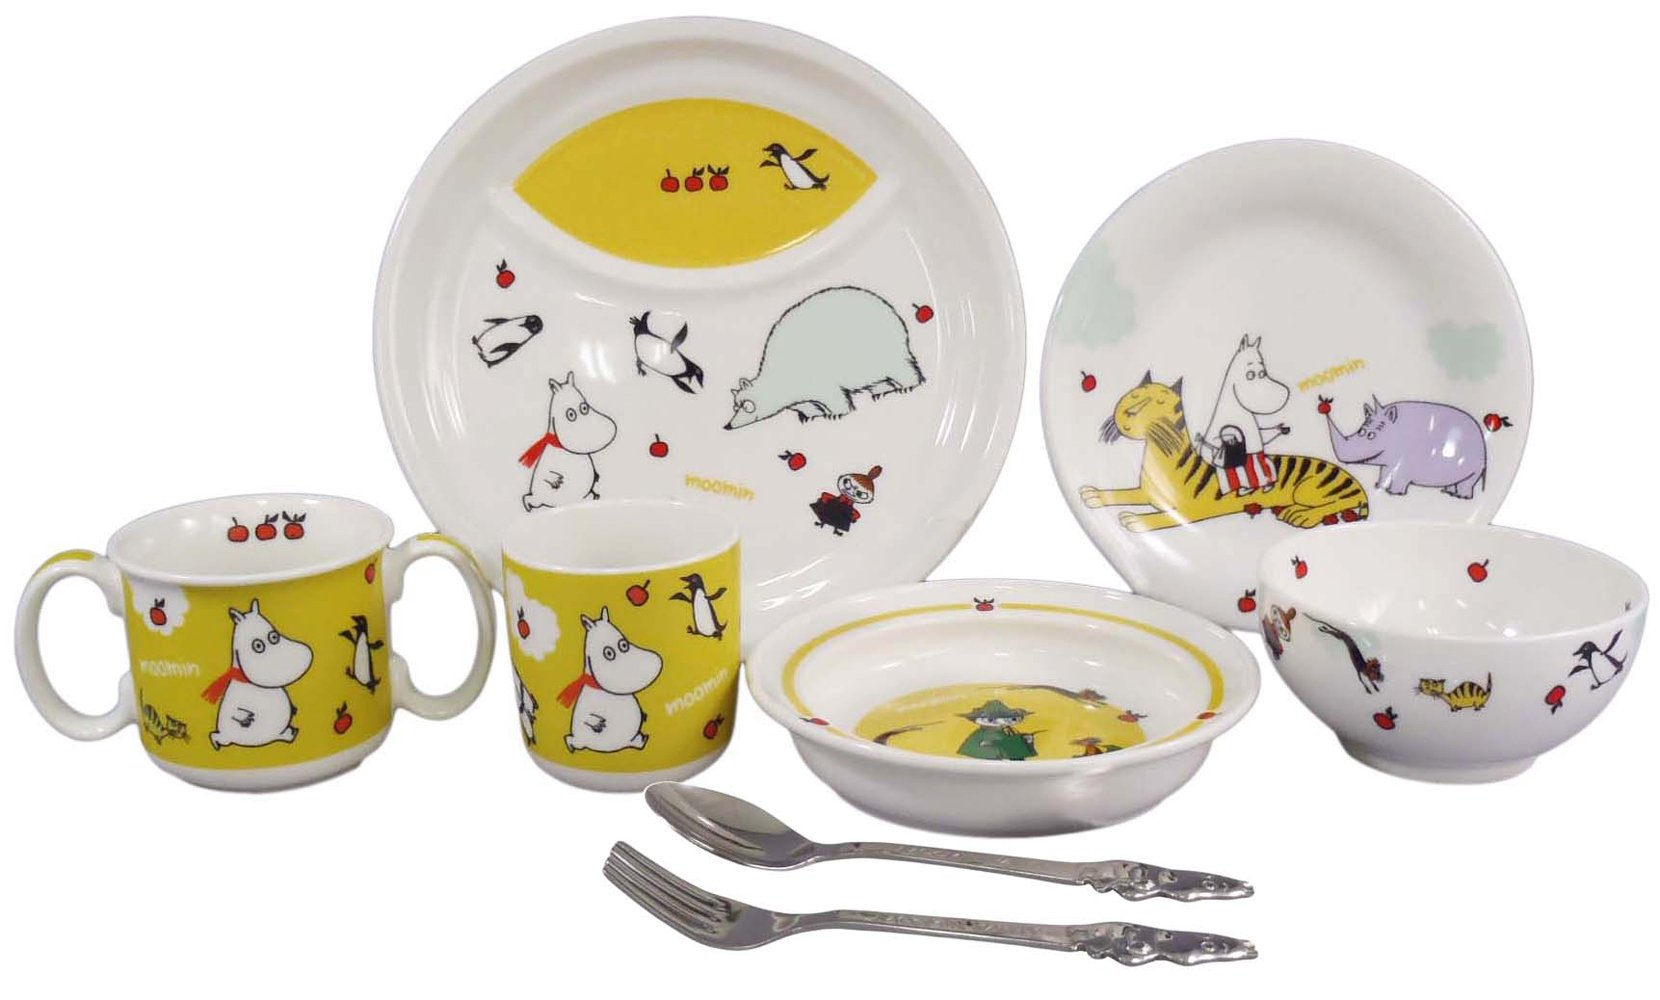 MOOMIN Moomin children tableware Dilley set MM140-303 by YamaKa shopping